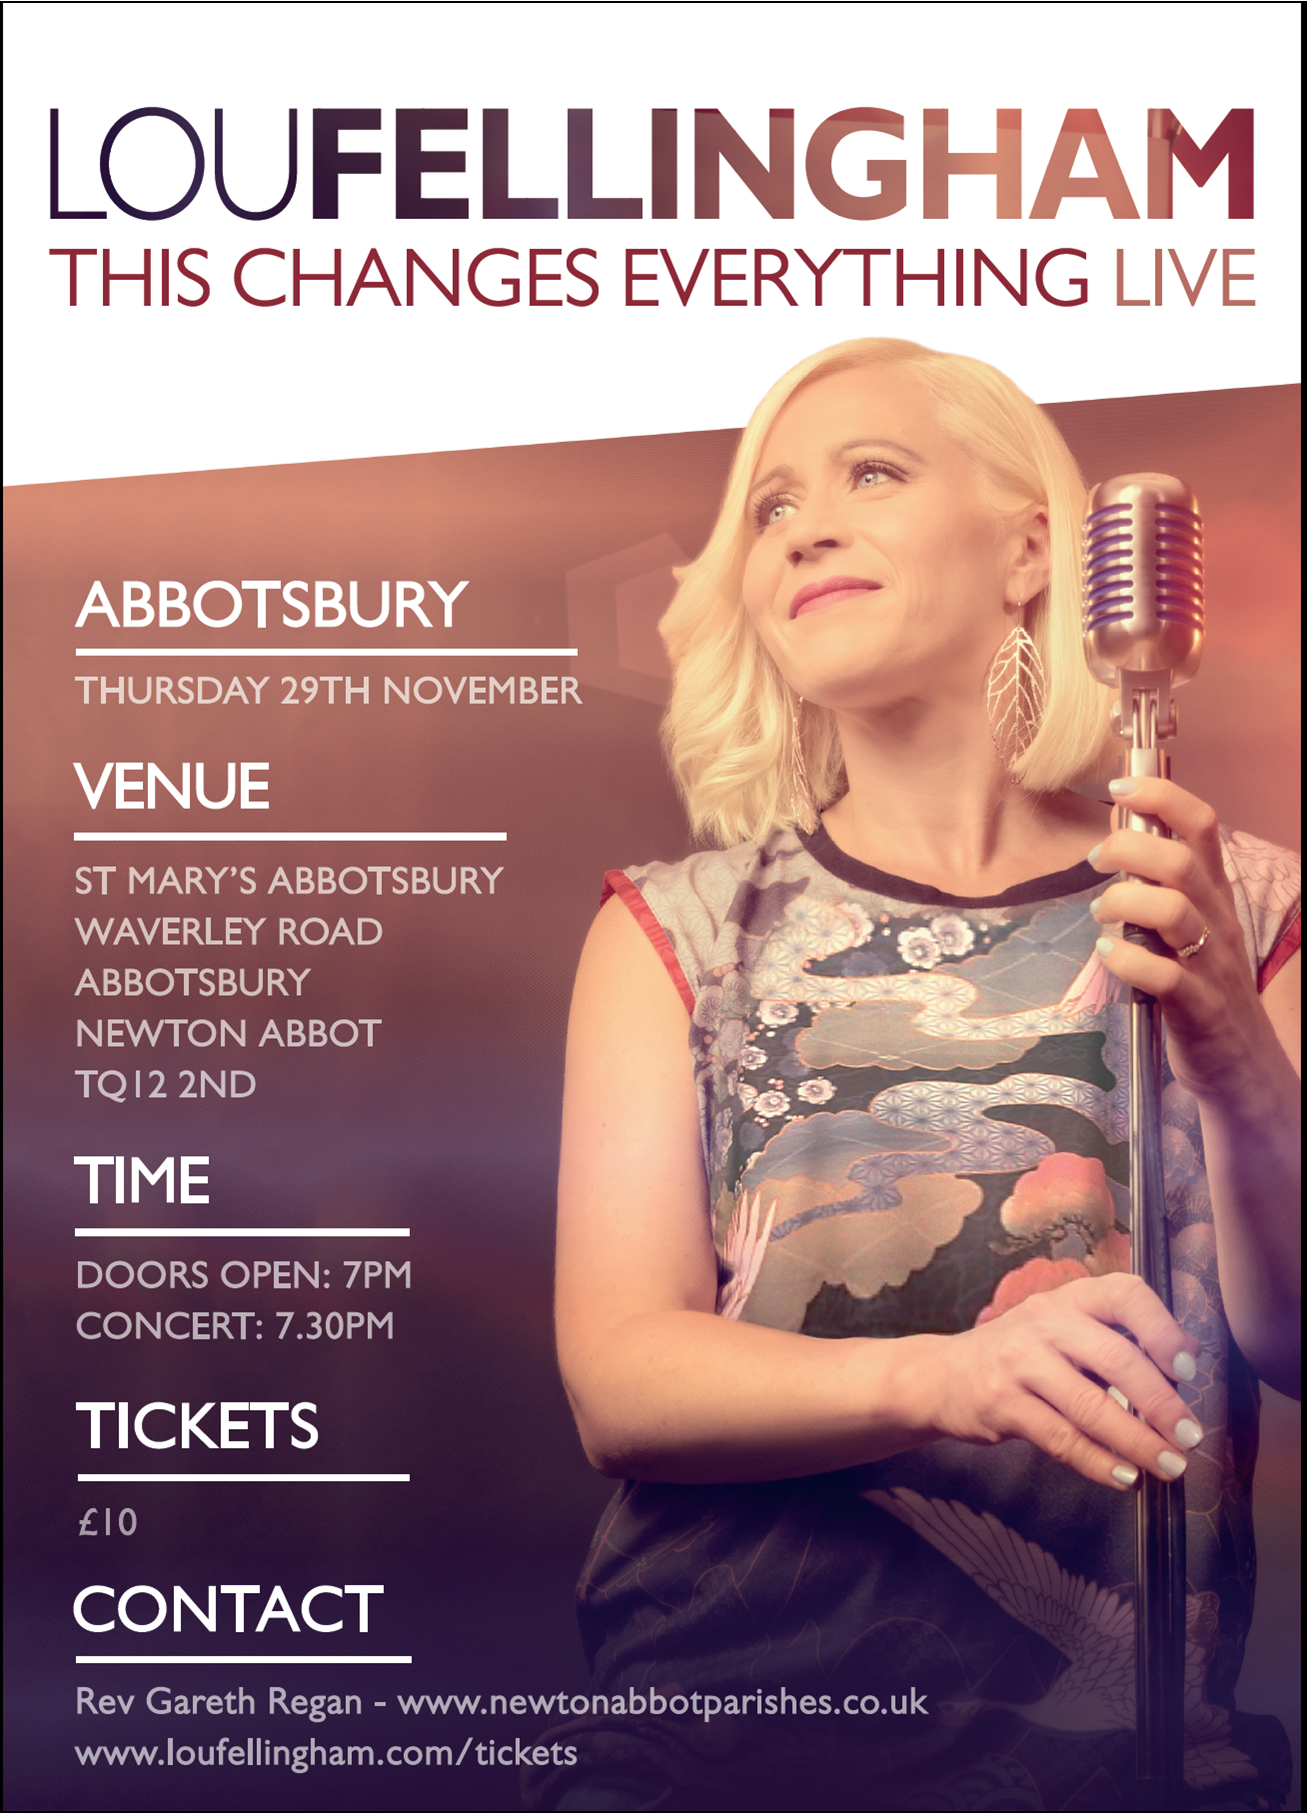 Lou Fellingham Live - This Changes Everything @ St. Mary's Church, Abbotsbury